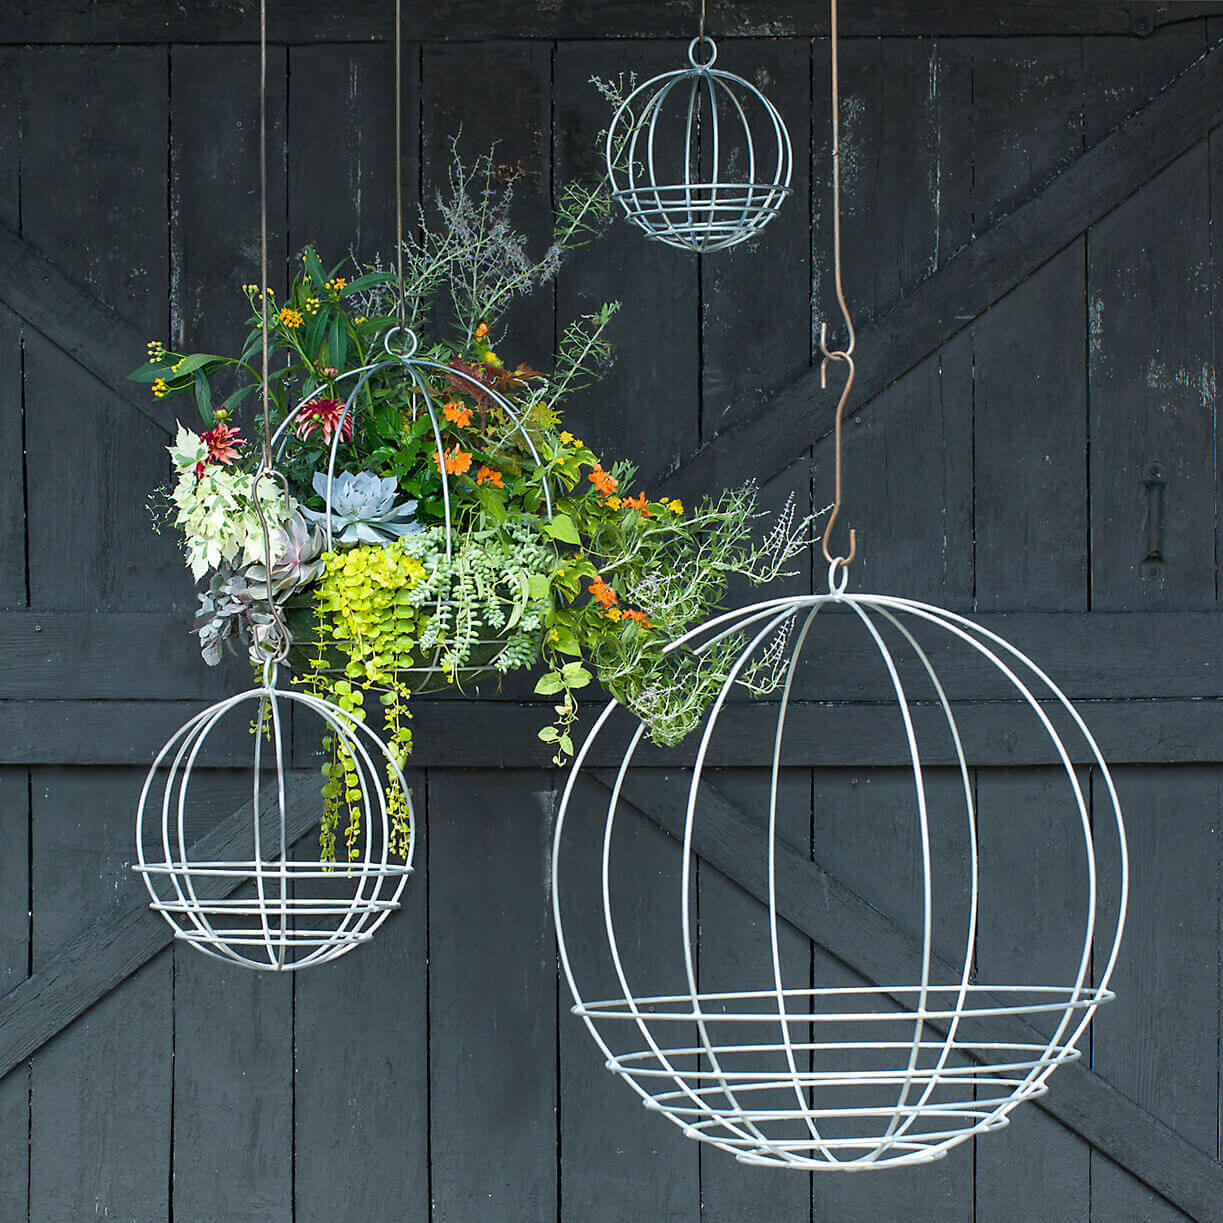 45 Best Outdoor Hanging Planter Ideas and Designs for 2017 on Plant Hanging Ideas  id=33492